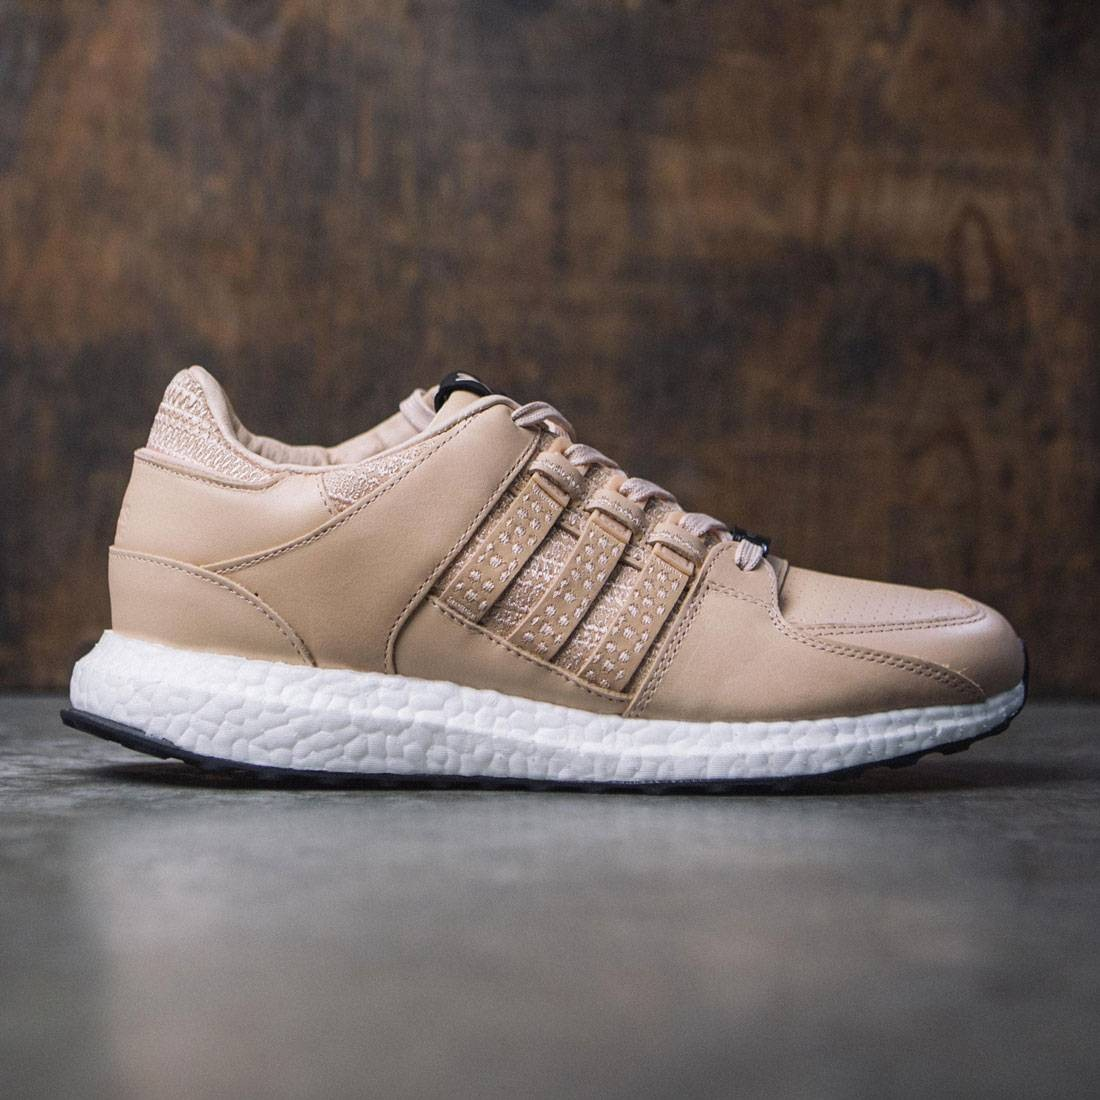 f1301bede43e Adidas Consortium x Avenue Men EQT 93 16 Support tan vegetable tan black  white